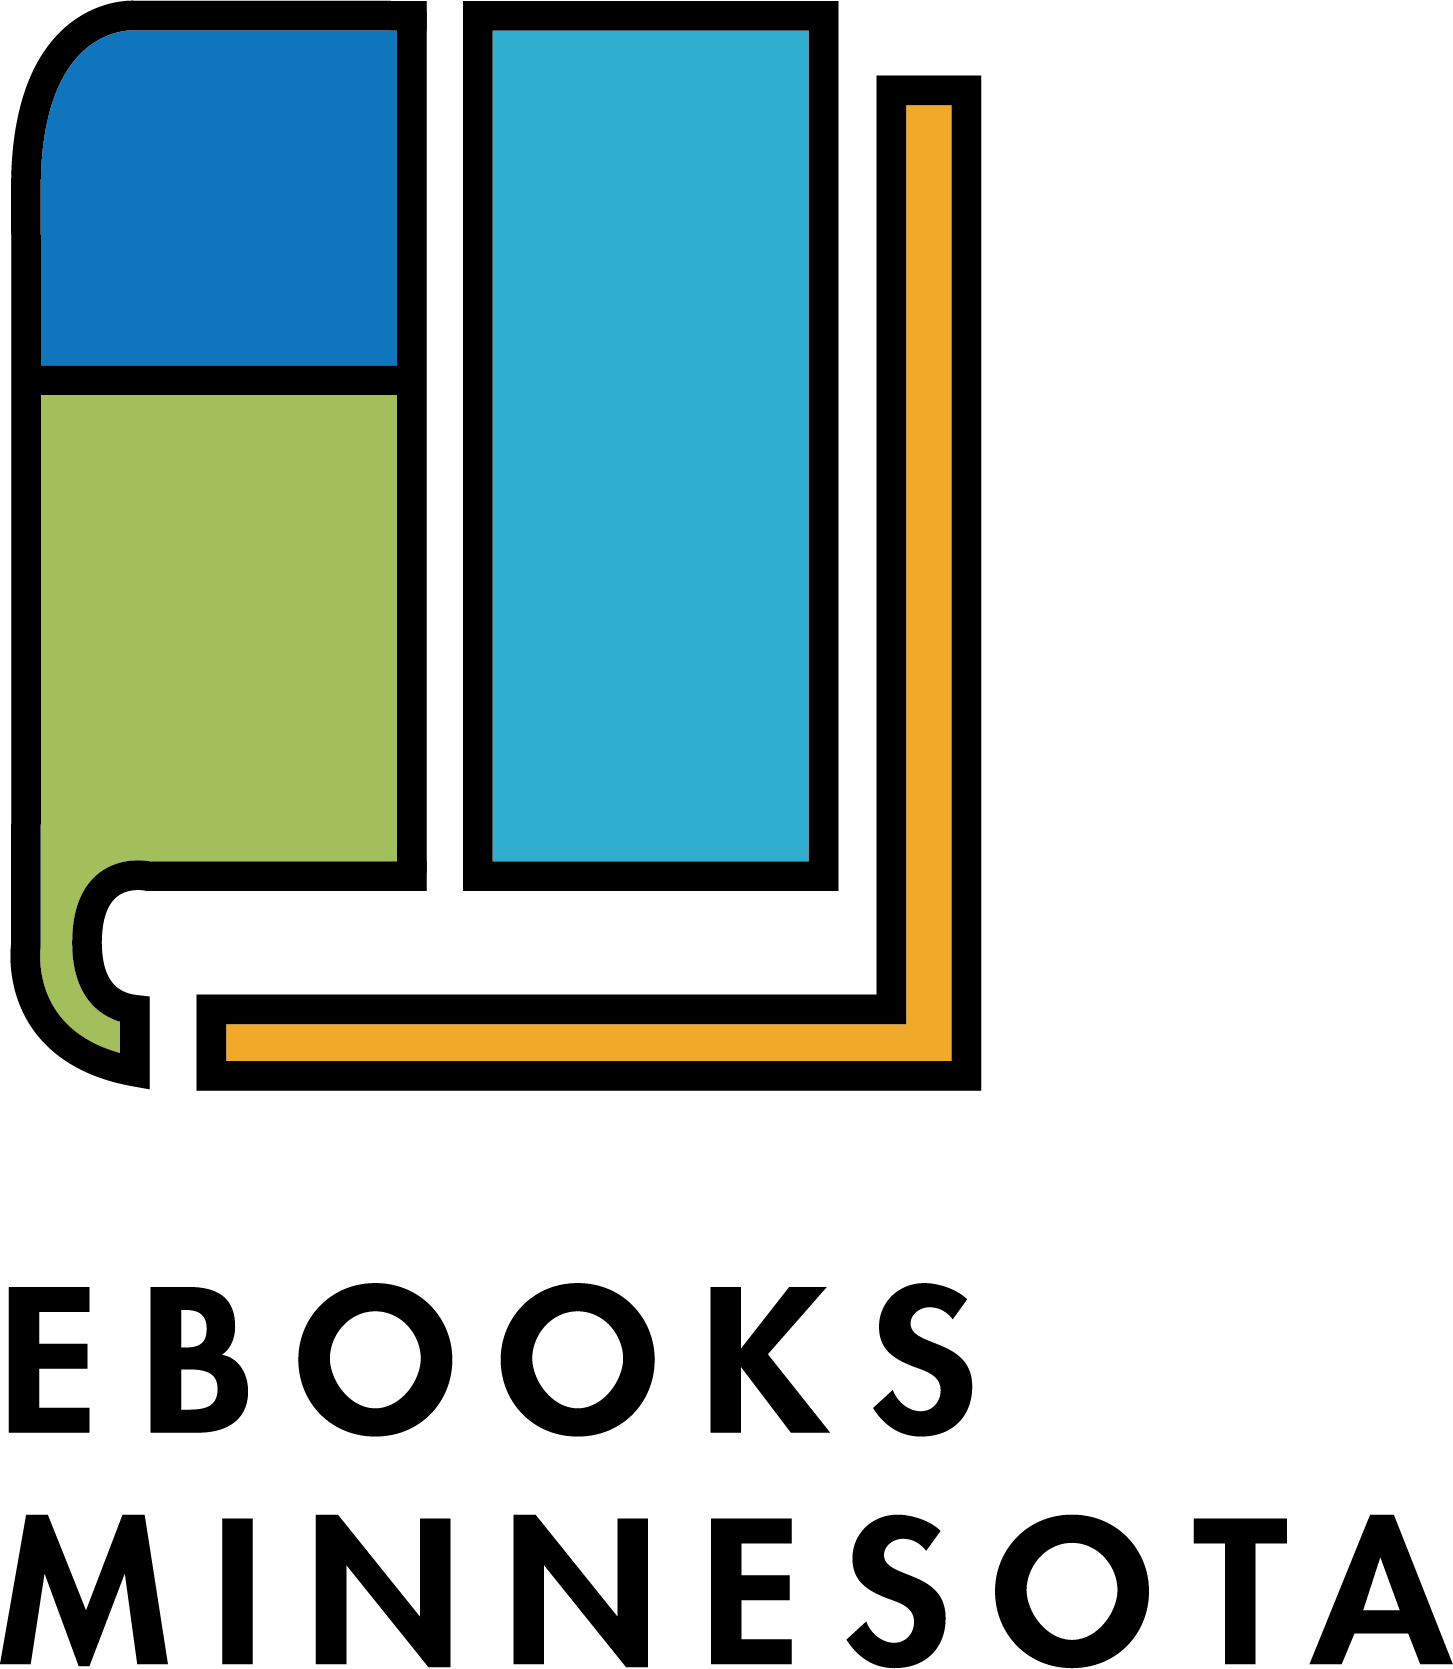 Ebooks Minnesota logo